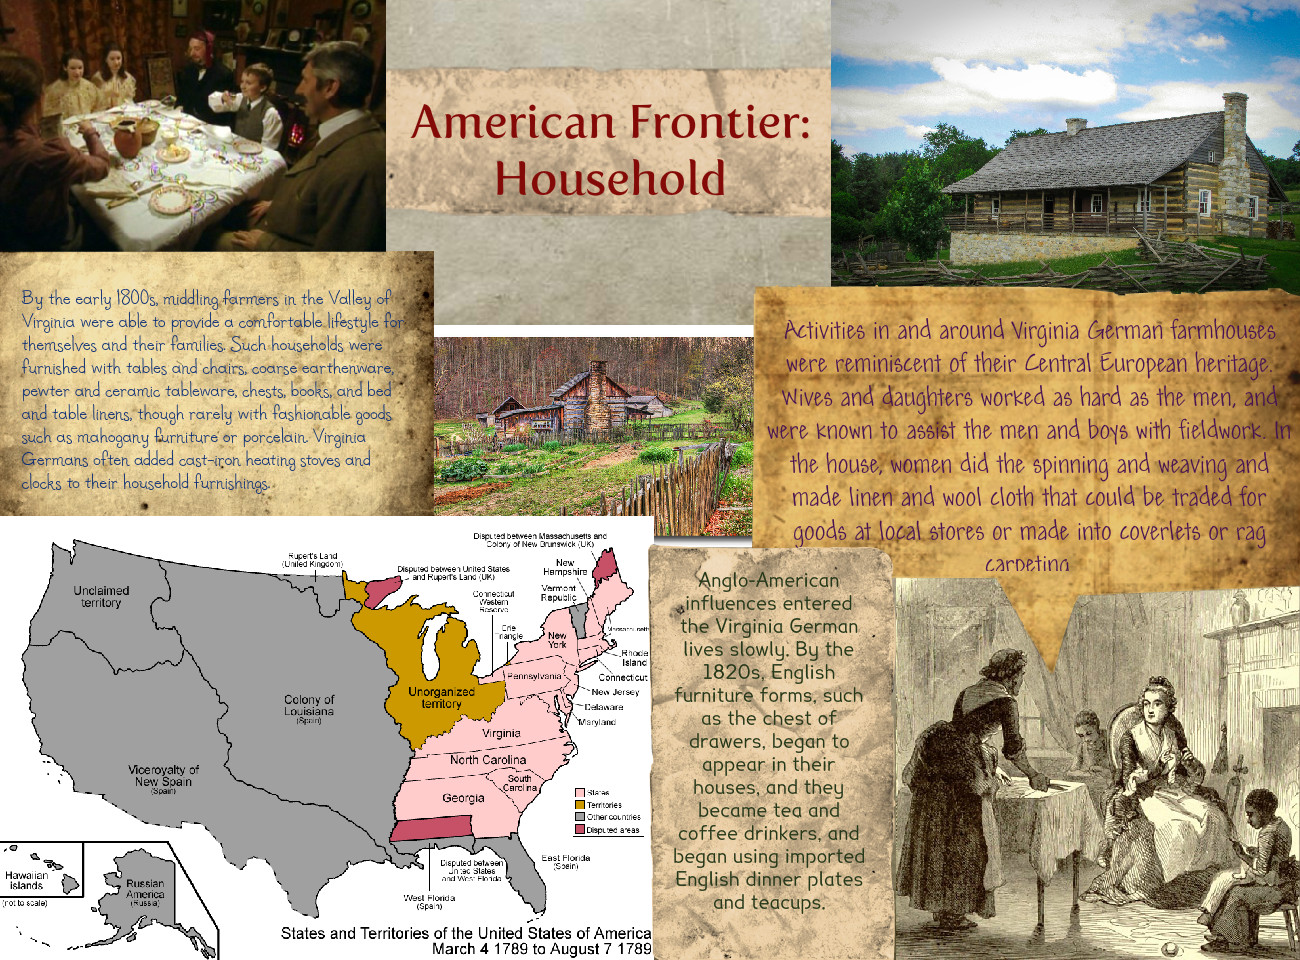 American Frontier: Household